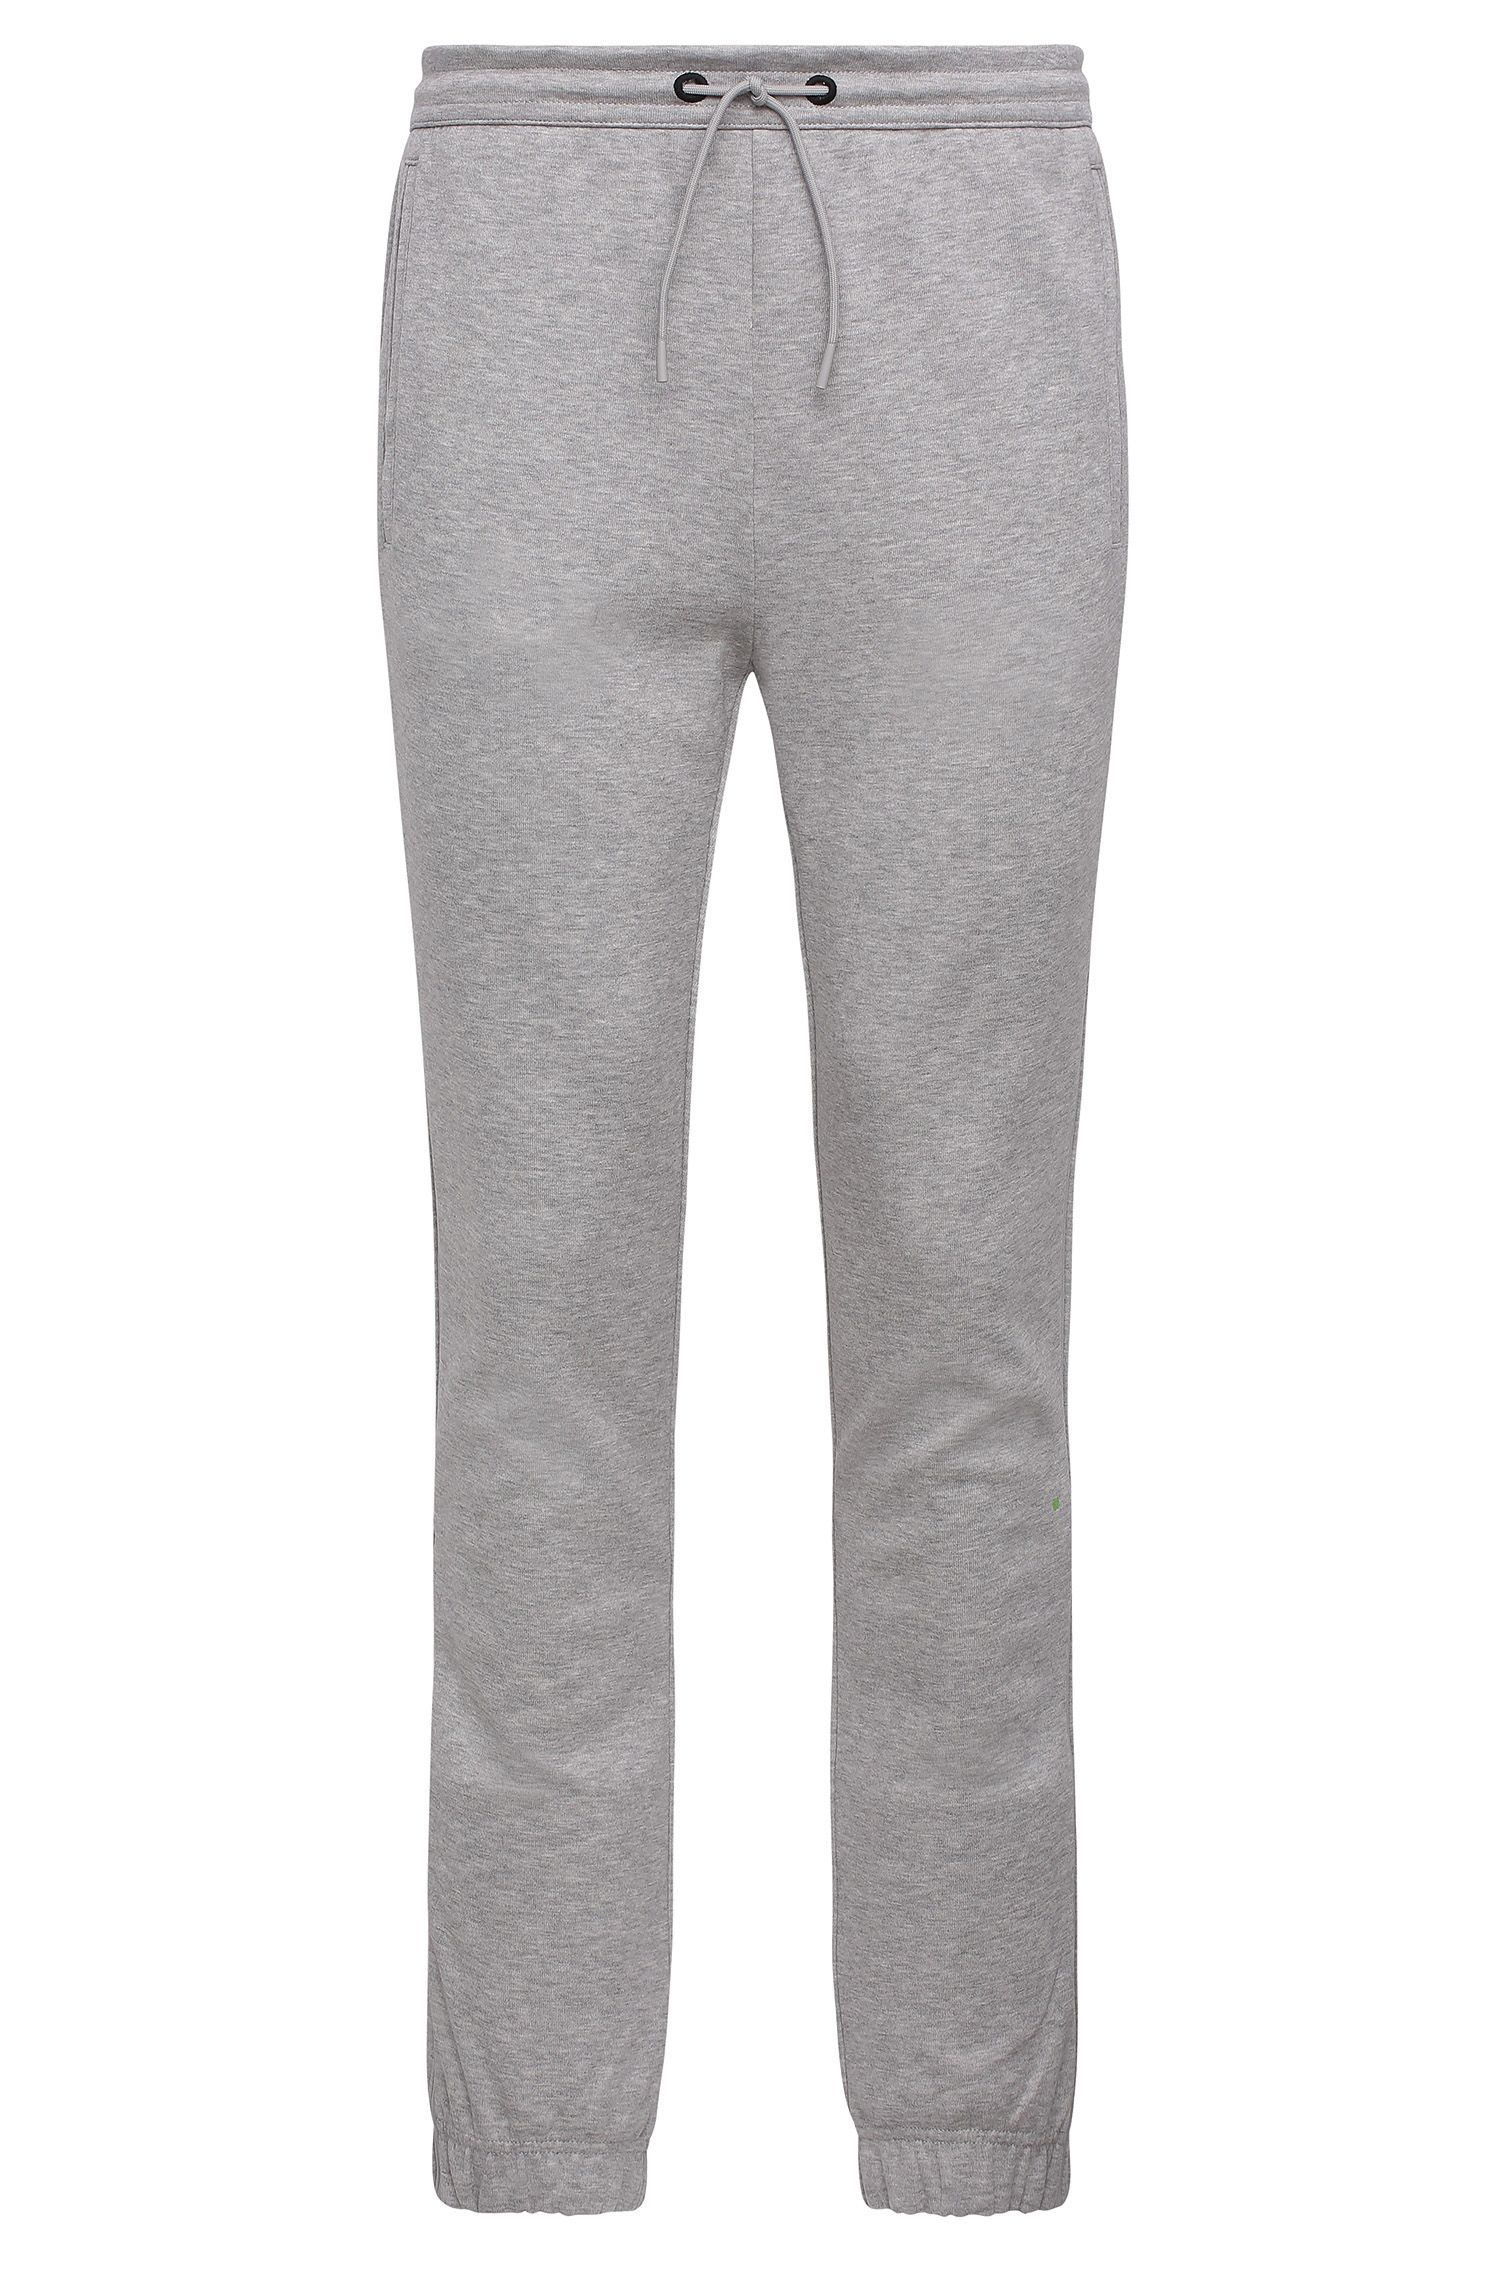 Cotton Blend Melange Sweatpant | Hadiko